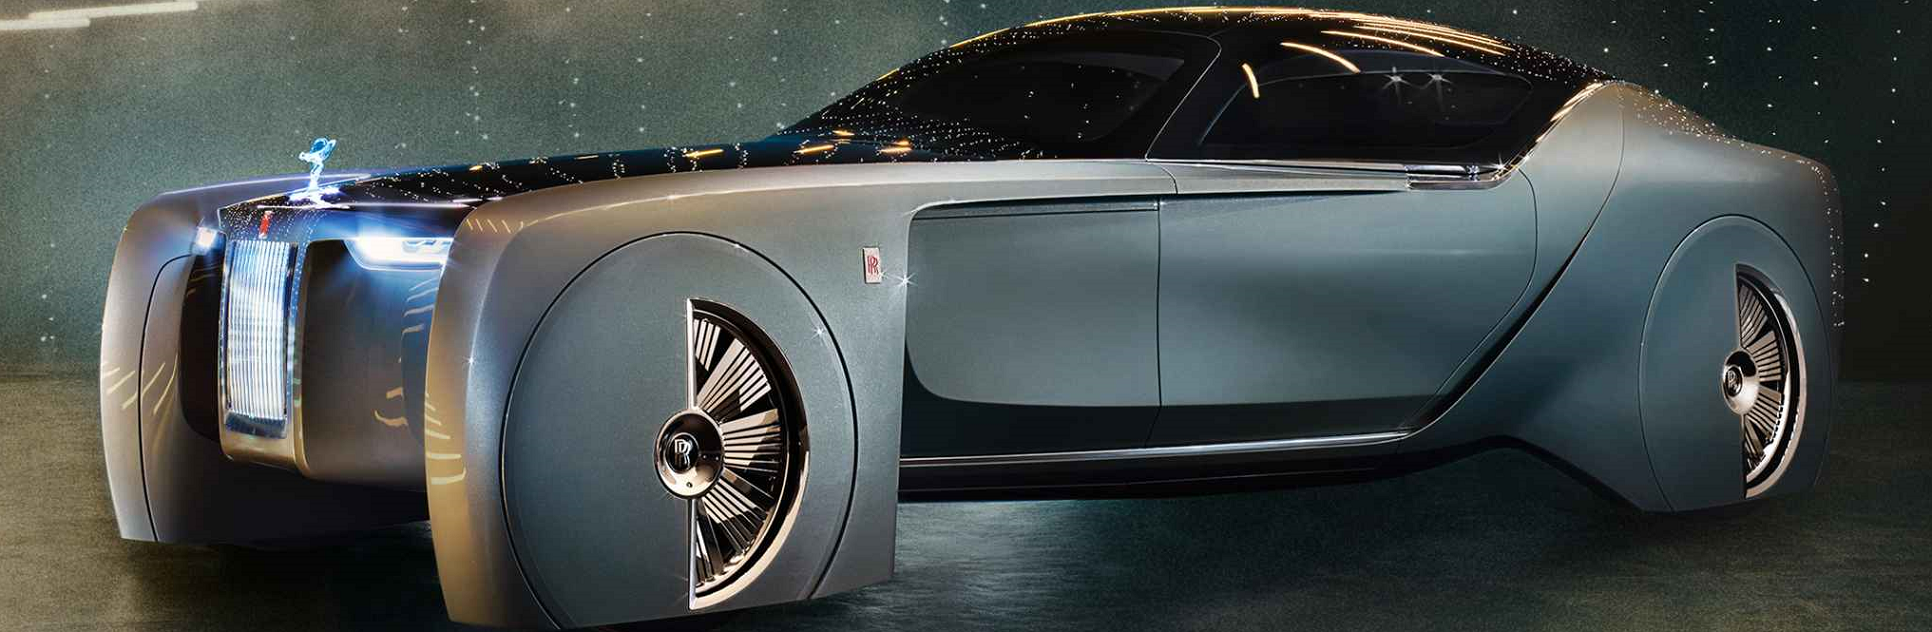 Rolls-Royce has created one of the most bizarre and futuristic looking concepts ever produced by the now German automaker. The Vision Next 100 is a luxury trike that displays large wheel covers and plenty of carbon fiber accents. The concept is long and sleek with a total length of 19.3 feet. Massive air channels can be seen running behind the front wheels that help to provide this front-trike of sorts with a space-age appearance that is unmatched by any other project currently being designed.